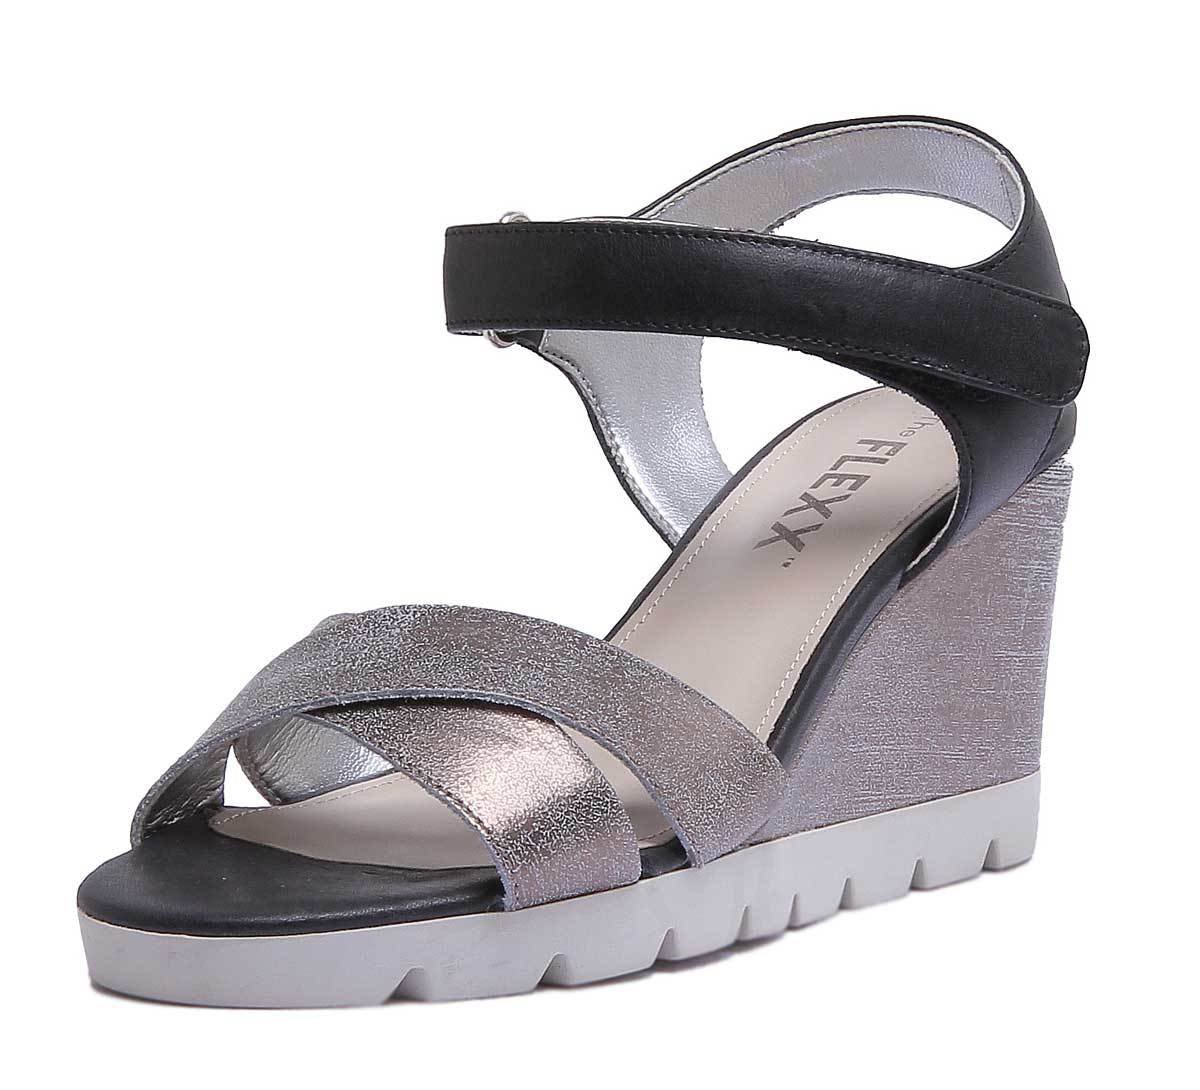 The FLEXX Lot Off Womens Golden Tan Leather Matt Sandal B07DPN5626 9.5 B(M) US|Silver Black